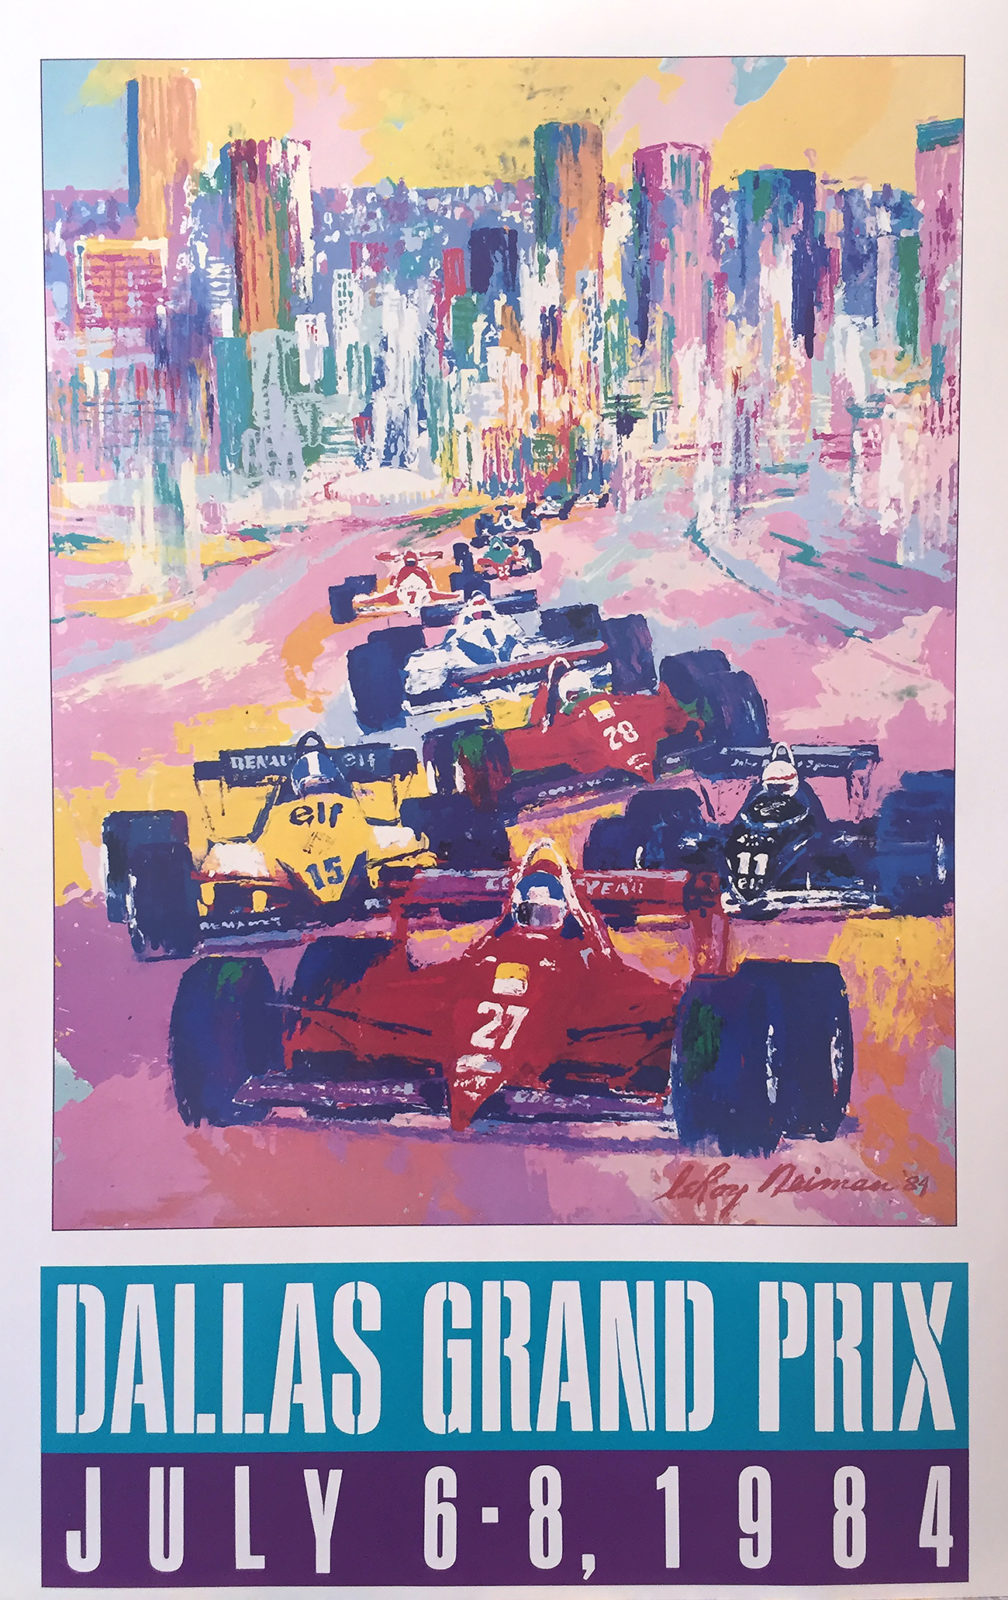 Dallas Grand Prix poster